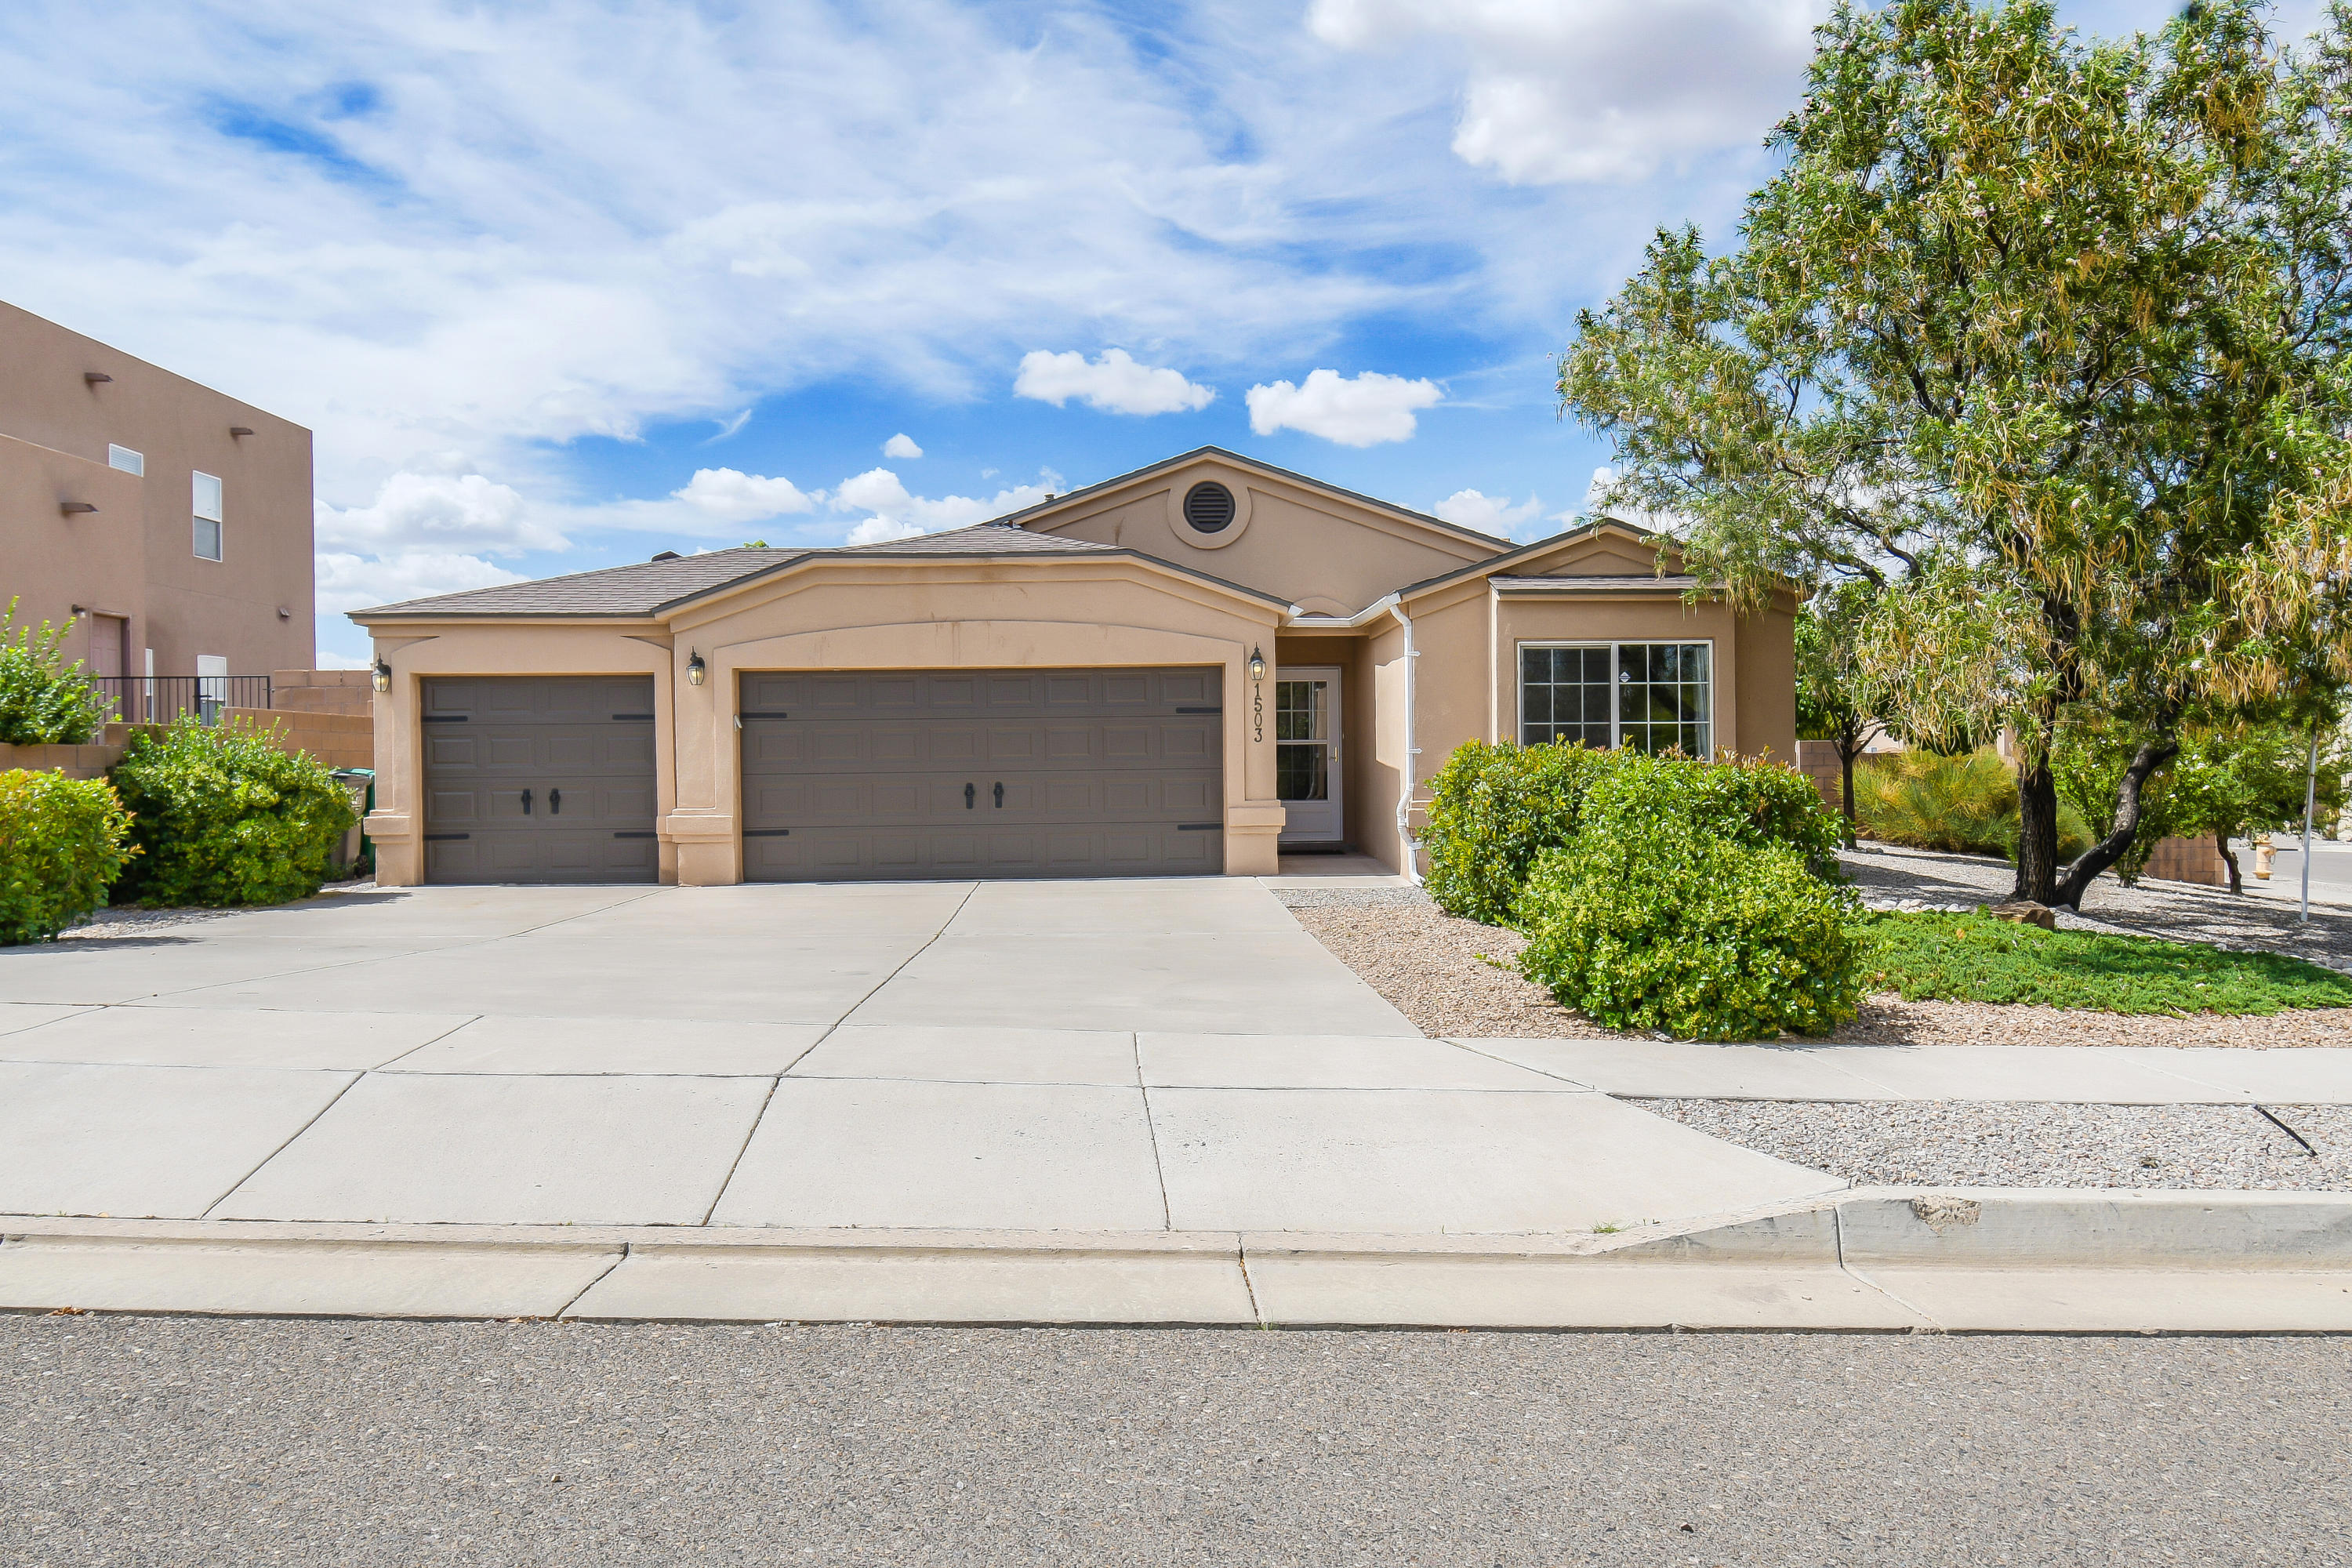 Picture the location of your next house, your new home: Rio Rancho. This Beautiful Spacious 1678 sq. ft. Single-Family Home built in 2005 in a corner lot contains 3 BR, 2 Baths with 3 car garage! Lots of updates in this bright and airy home. New roof installed last 2019 and the sun-filled home has tile throughout including the baseboard. The cozy family space has it's glass covered gas log fireplace perfect for relaxing and unwinding. Granite countertop accented with nice stone tilebacksplash, wooden cabinetry, pantry and appliances creating an incredible kitchen any Chef would approve. The walled backyard has covered patio and a storage shed with stucco and roof that matches the house perfect for entertaining. This prestigious home is a fabulous find and definitely not to be missed!